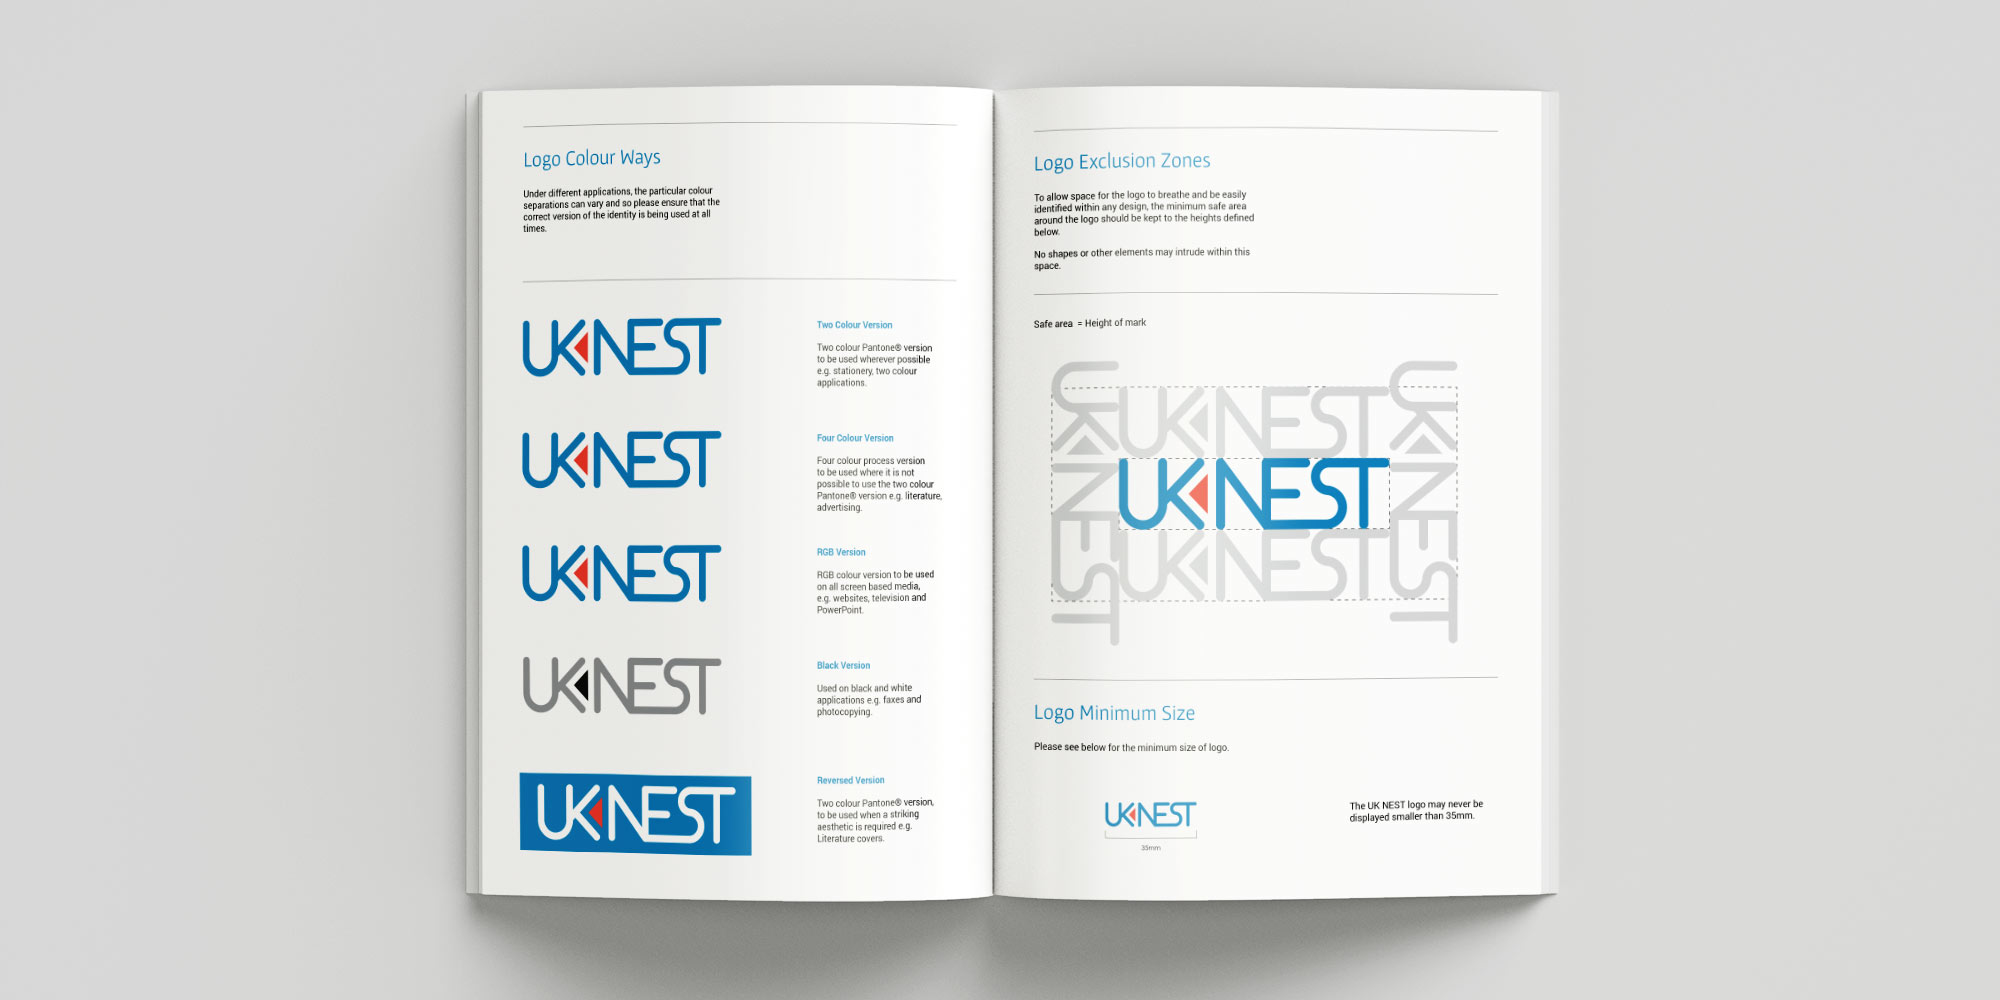 UK Nest Brand Guidelines Design